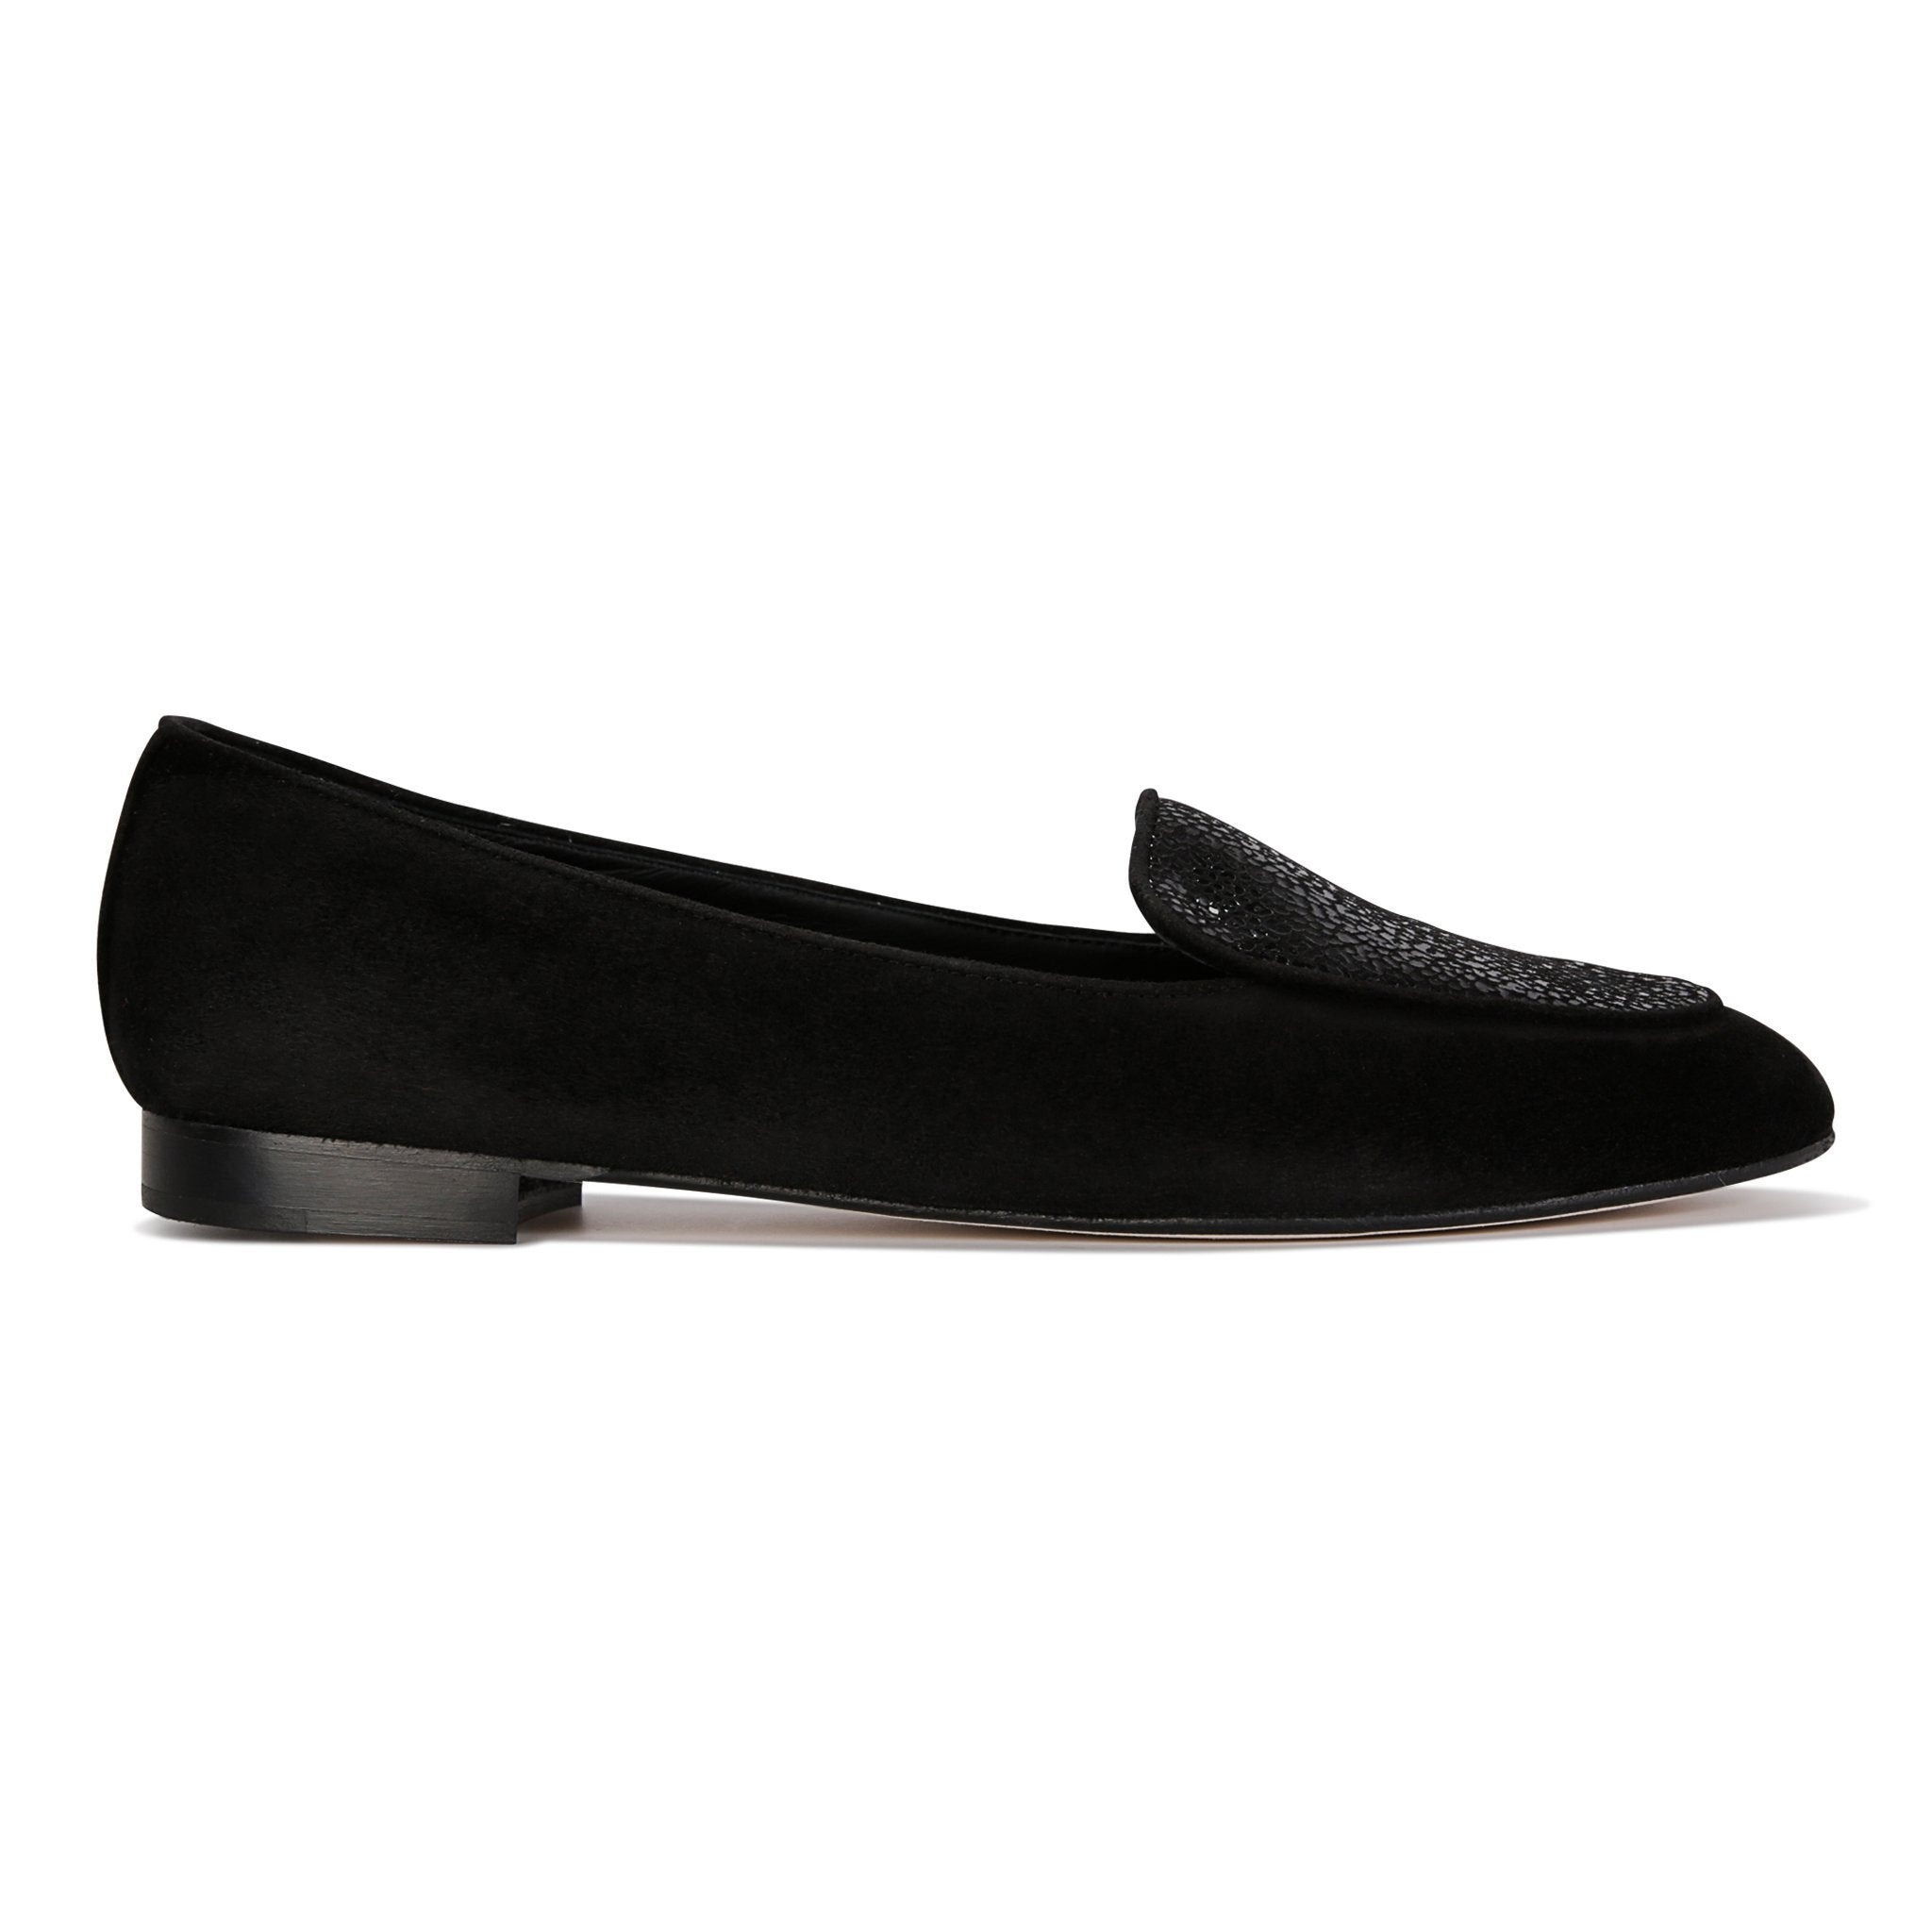 REGGIO - Velukid Nero + Savannah, VIAJIYU - Women's Hand Made Sustainable Luxury Shoes. Made in Italy. Made to Order.